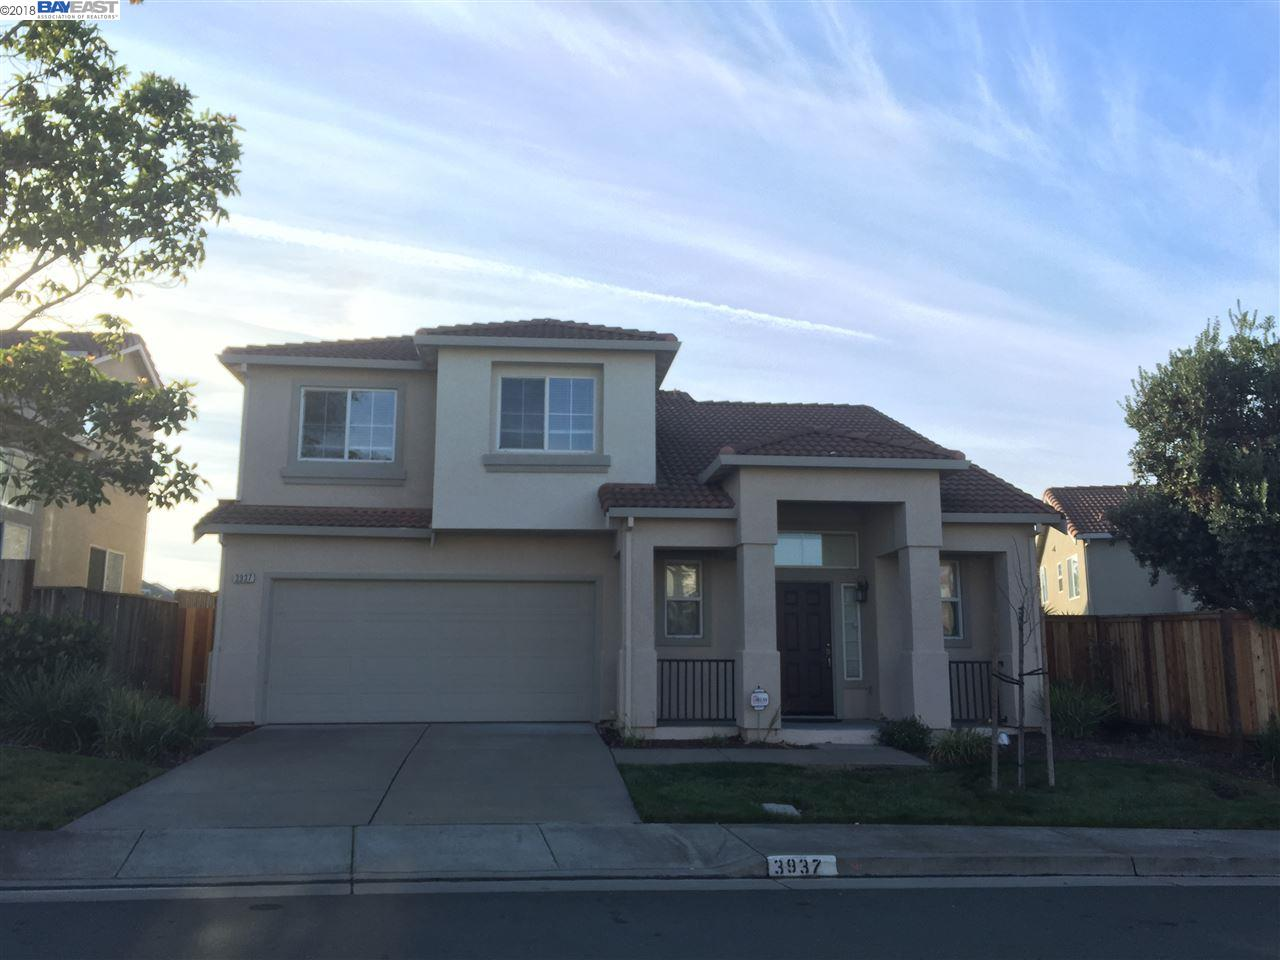 3937 SELMI GRV, RICHMOND, CA 94806